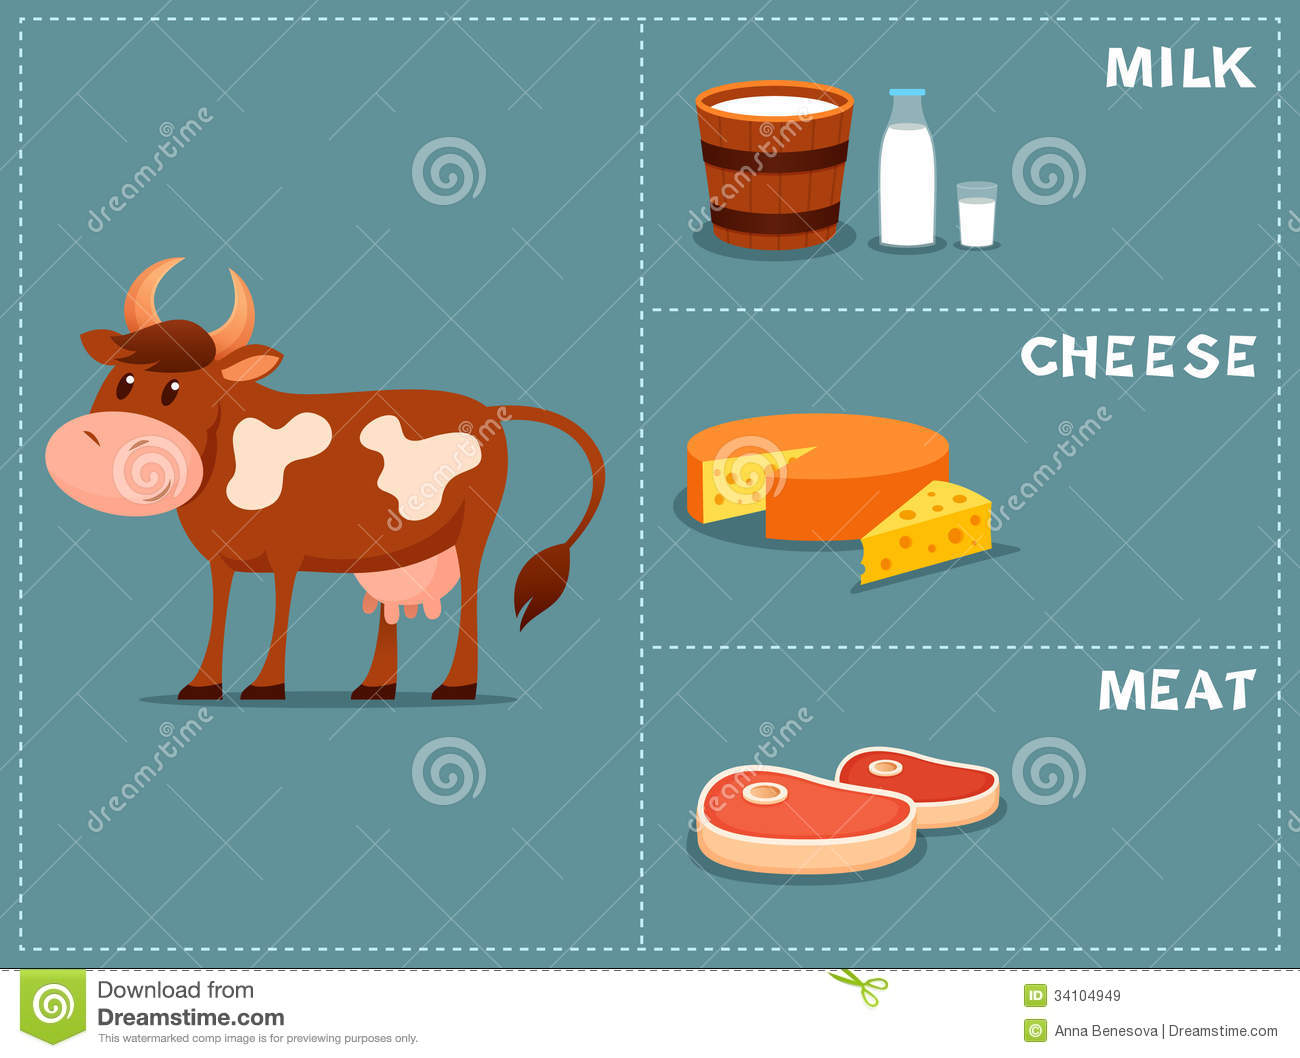 Cute Cartoon Illustration Of A Cow Stock Vector - Image ...